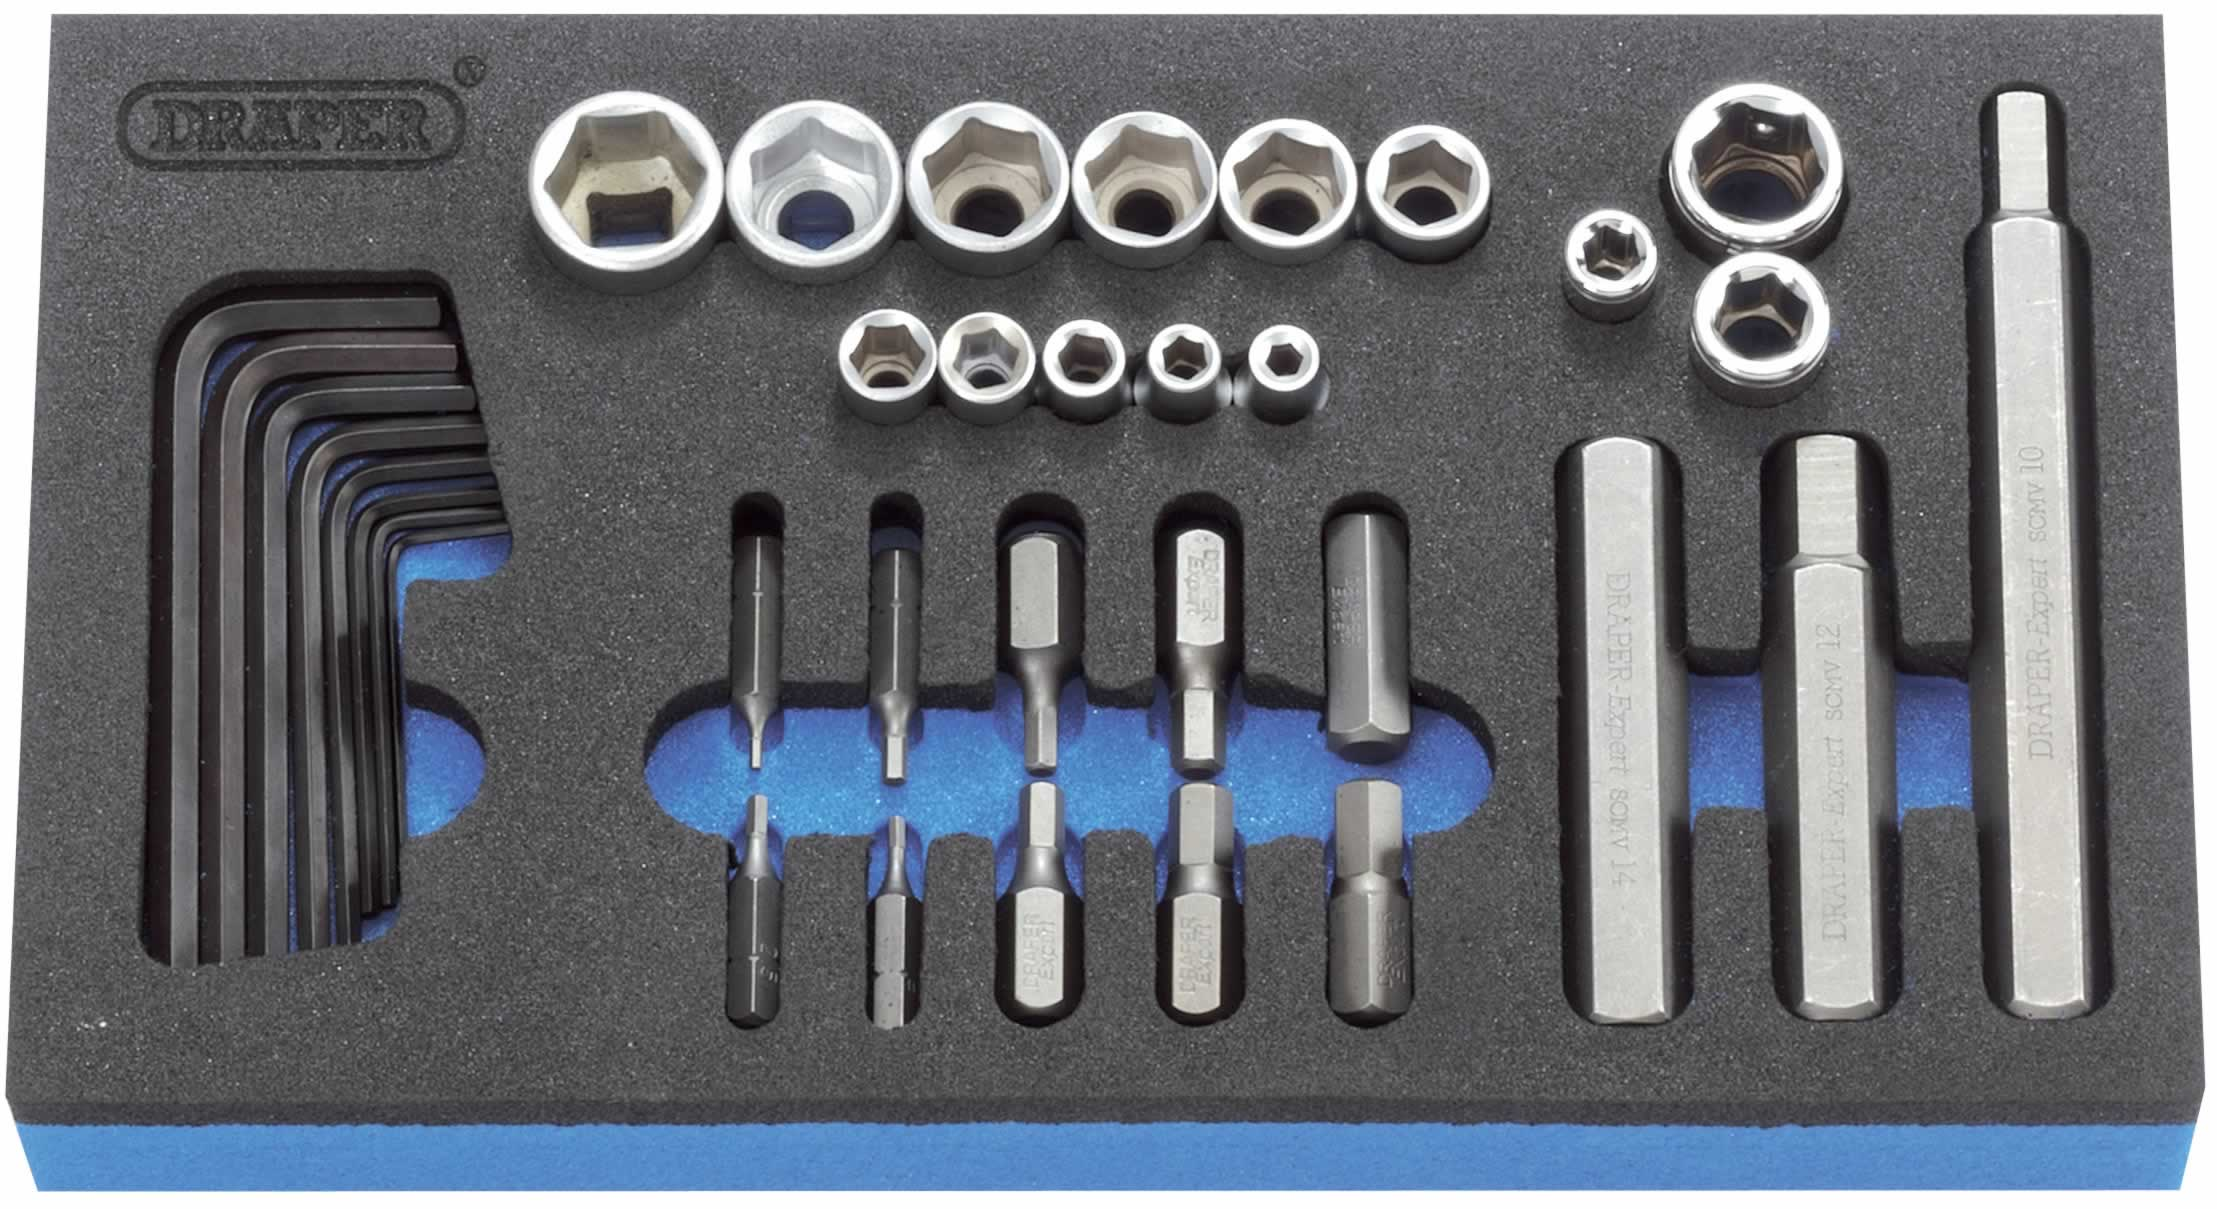 "EXPERT 35 PIECE 1/4, 3/8, 1/2"" Sq. Dr. METRIC HEXAGON SOCKET, BIT AND KEY SET IN EVA FOAM INSERT TRAY"